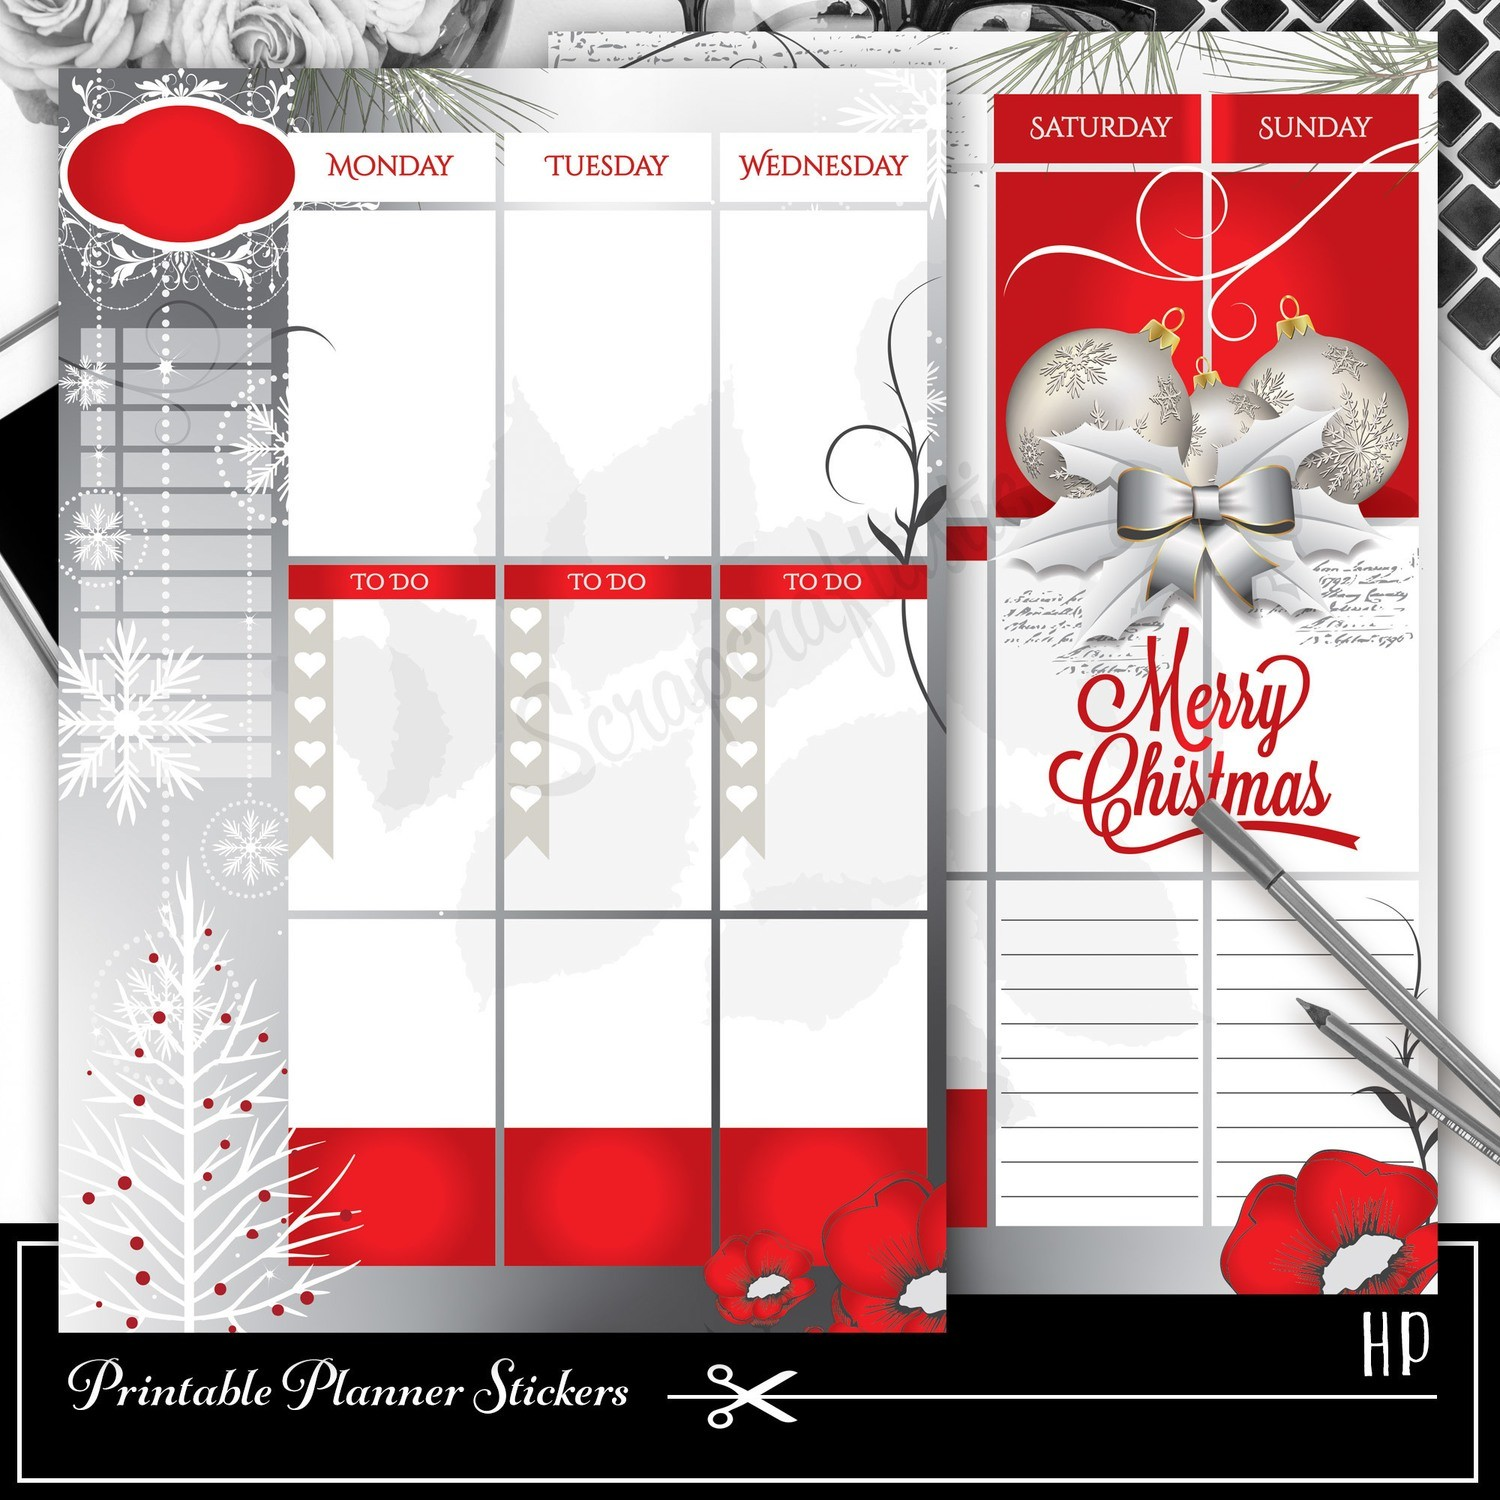 CLASSIC DISC - Red Christmas Week Planner Spread Printable Planner Sticker Overlay for classic size Mambi Happy Planner